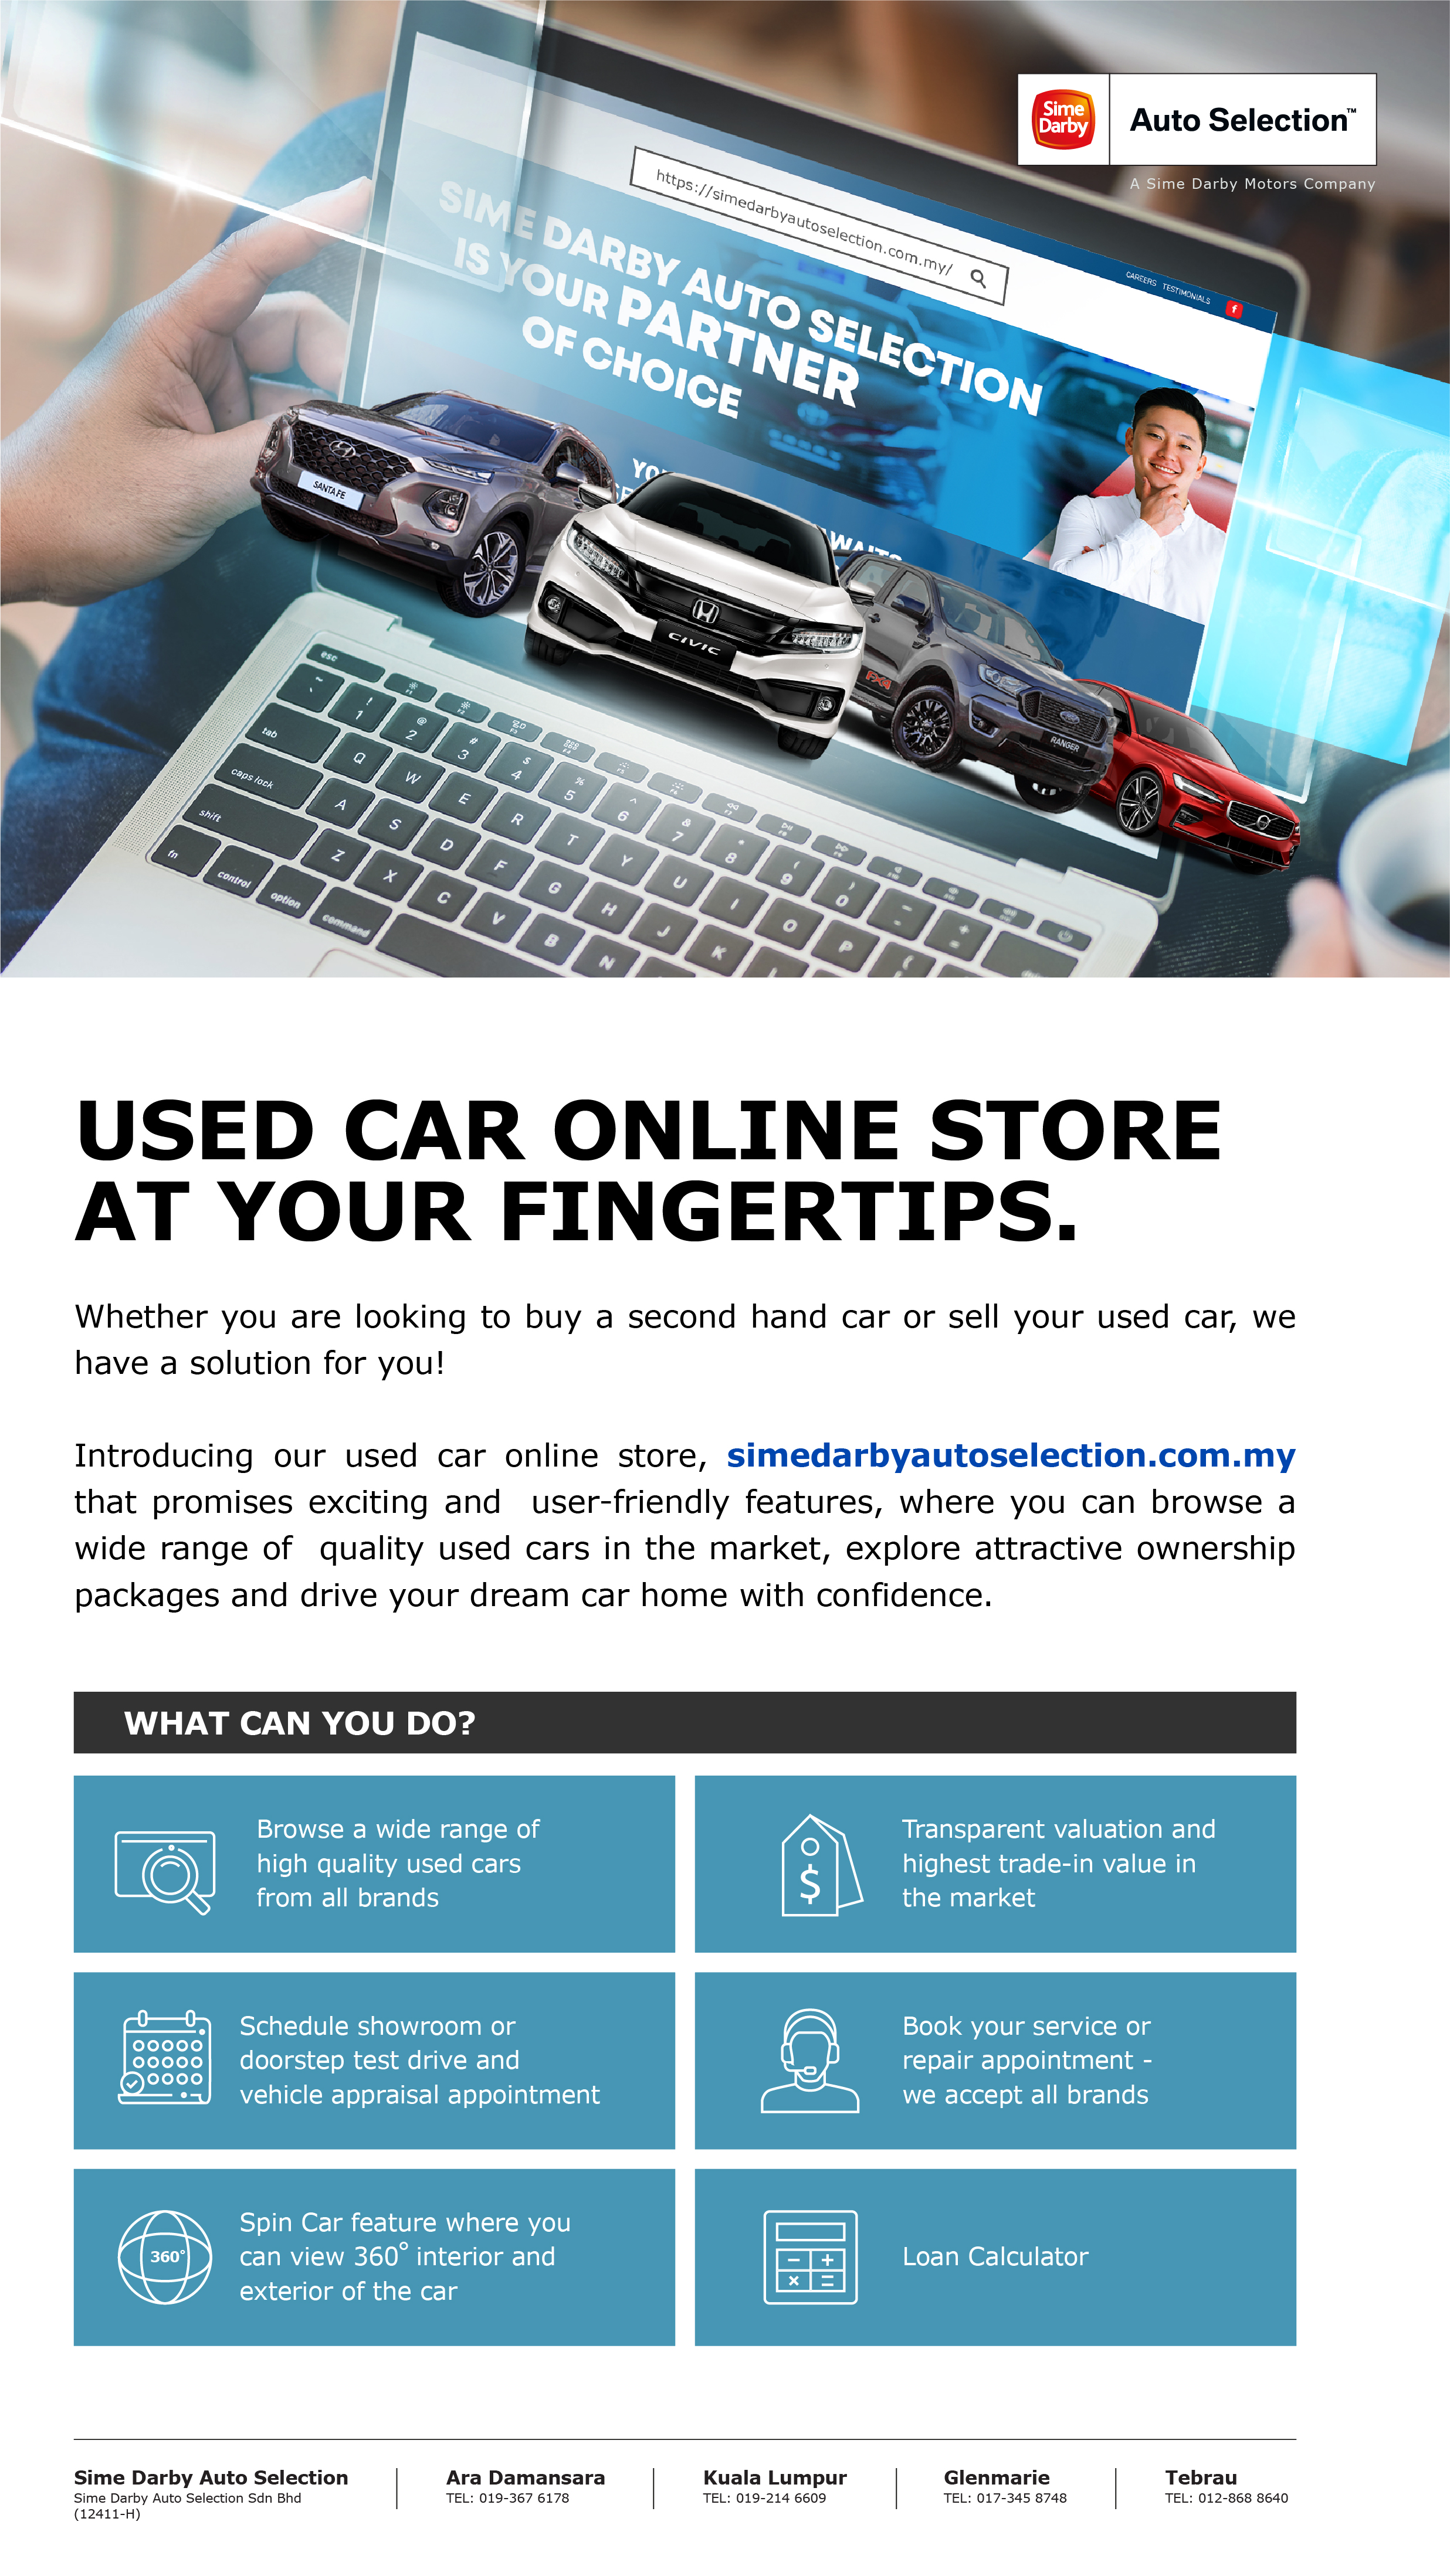 Sime Darby Auto Selection Website Launch